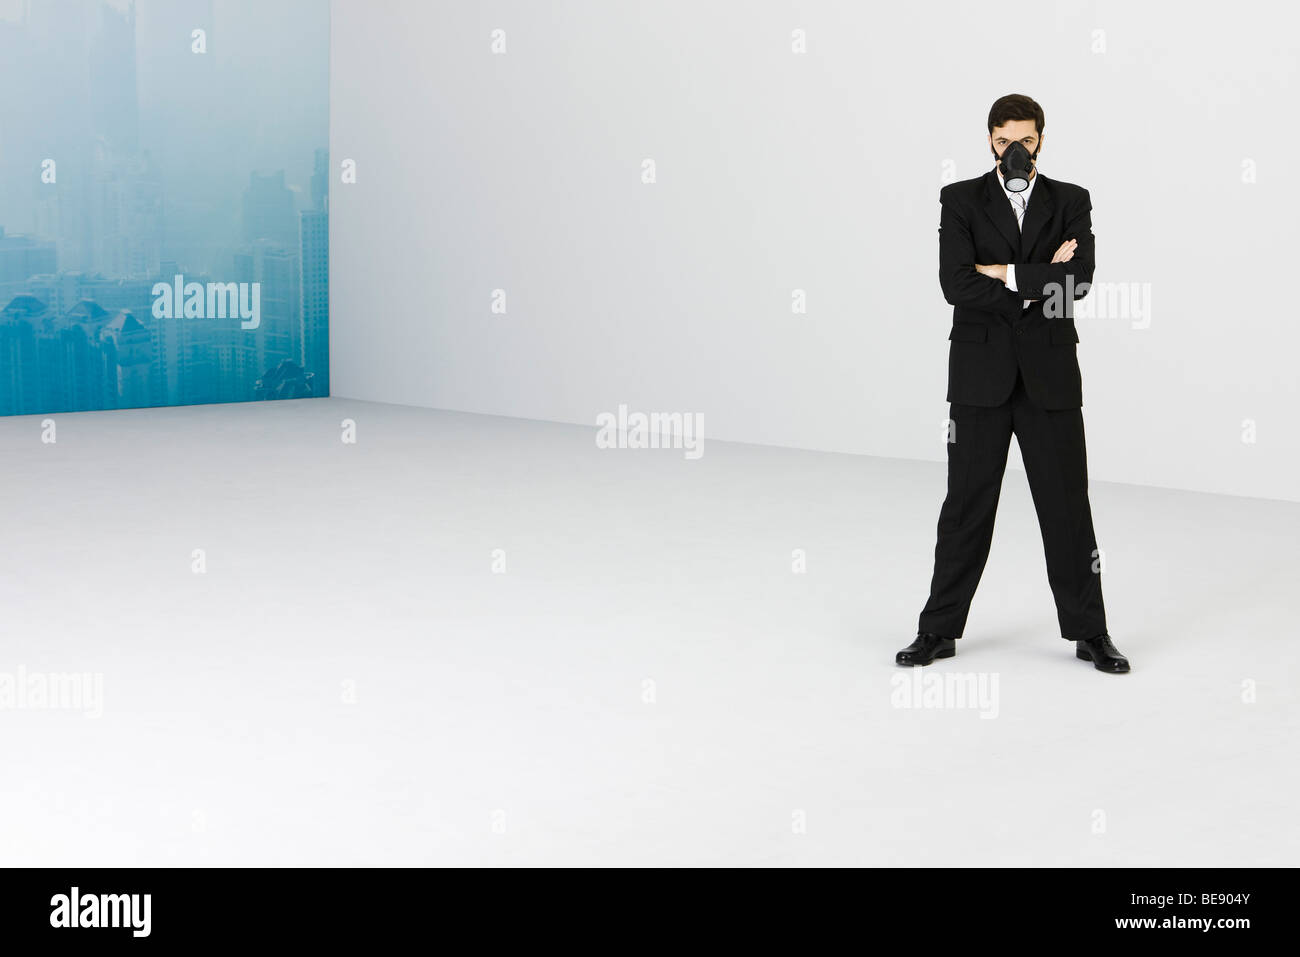 Businessman wearing gas mask, standing with arms folded, cityscape obscured by smog in background Stock Photo